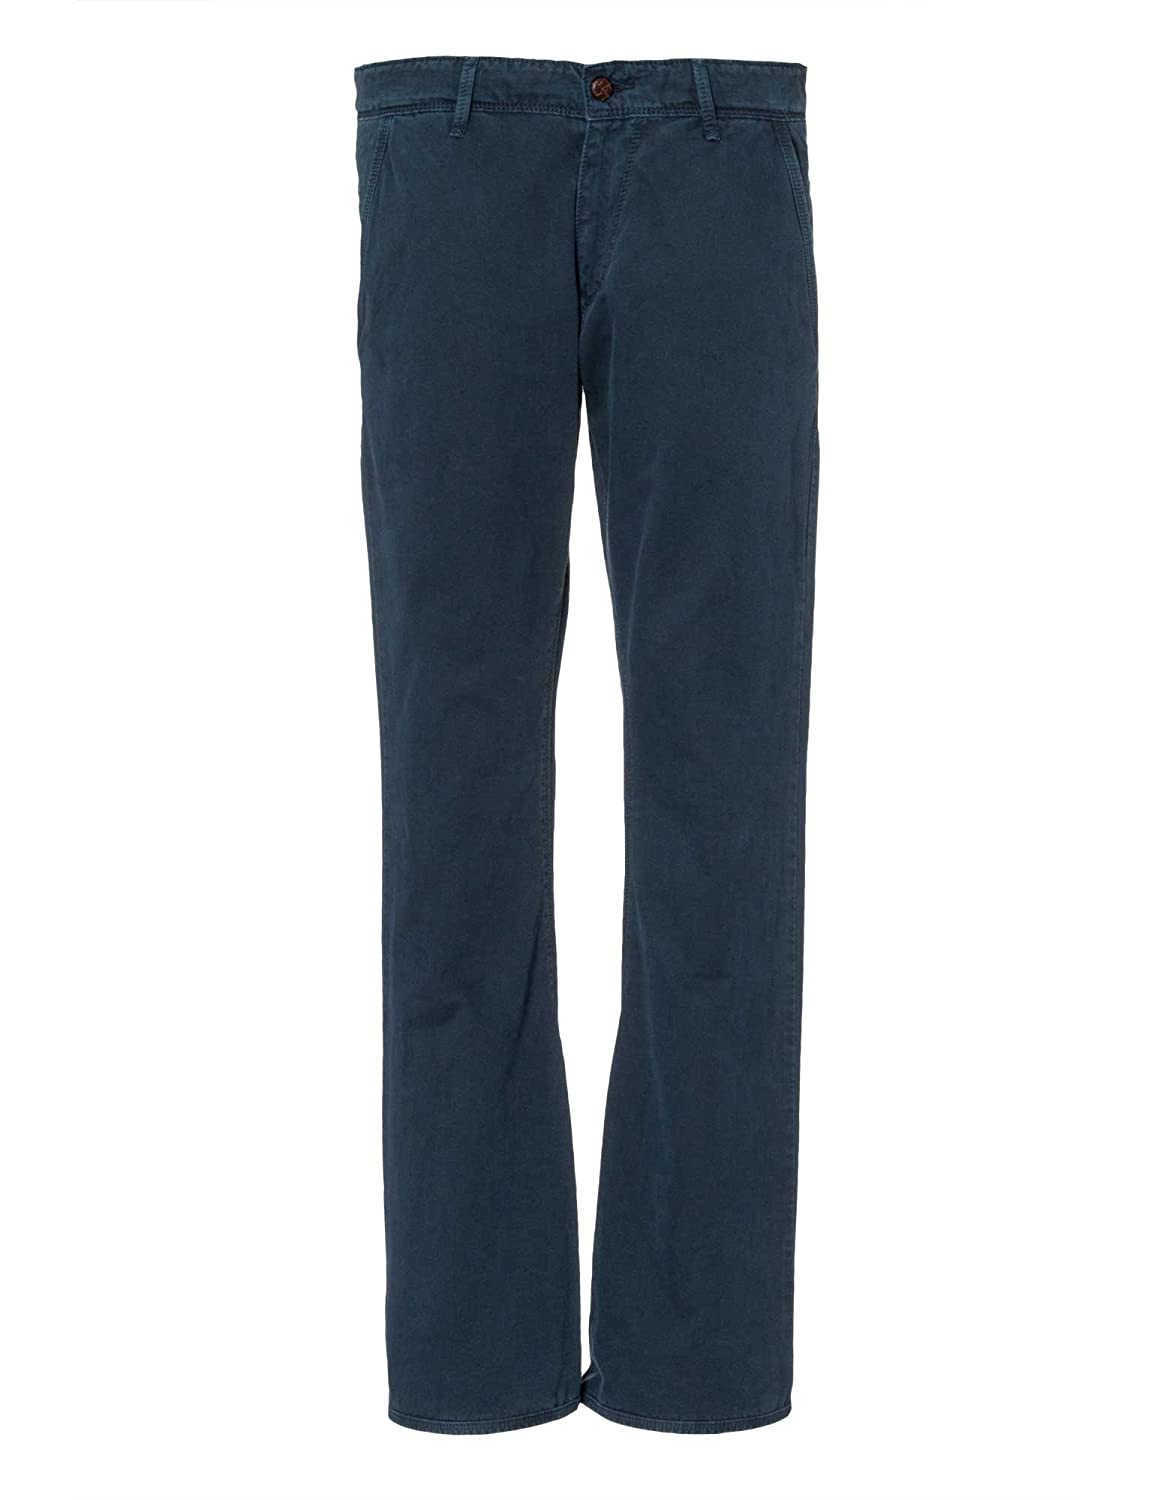 STRENESSE Men trousers summer collection